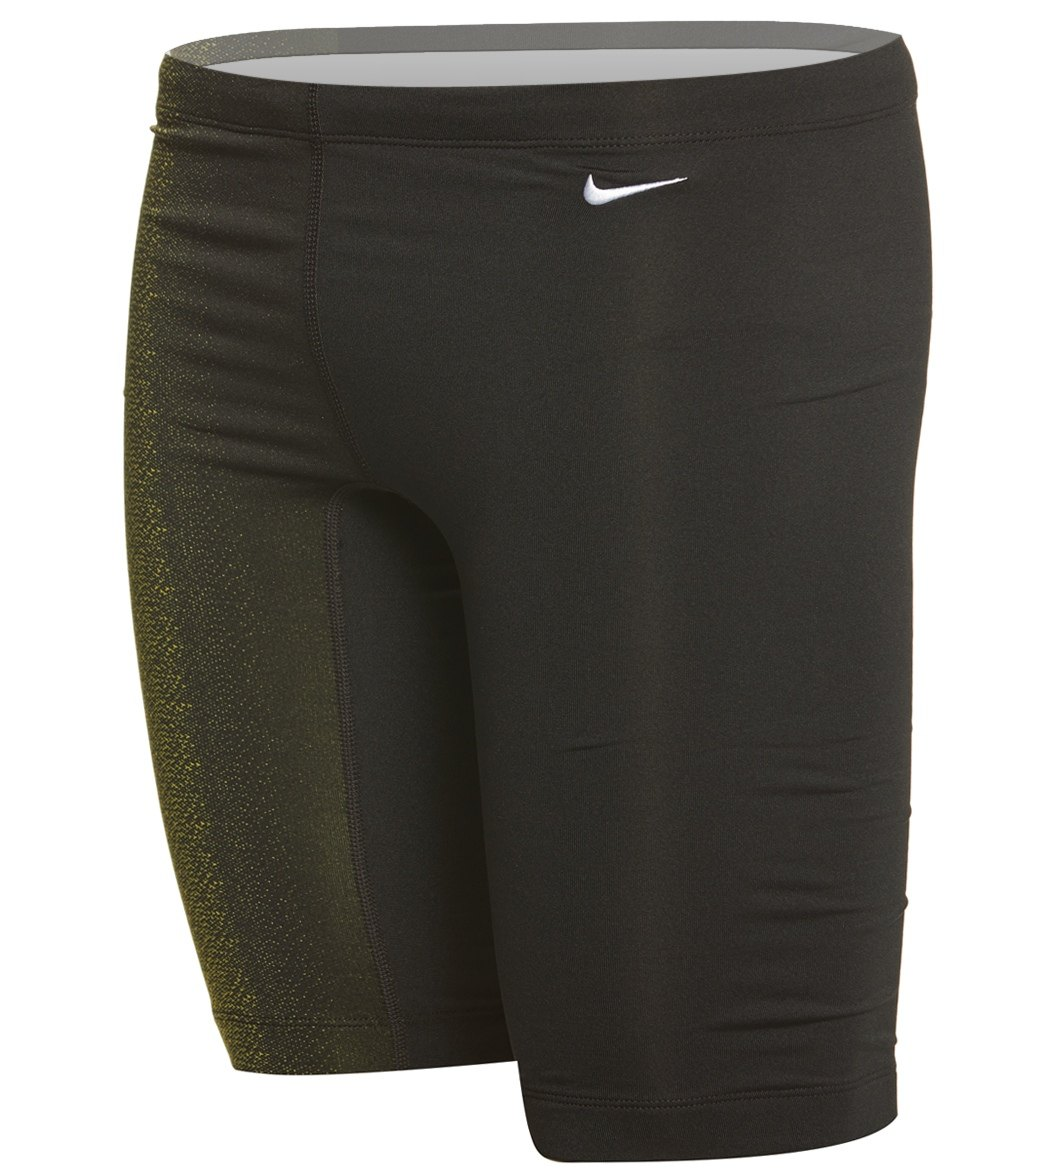 45cb1c4b7 Nike Men's Fade Sting Jammer Swimsuit at SwimOutlet.com - Free Shipping